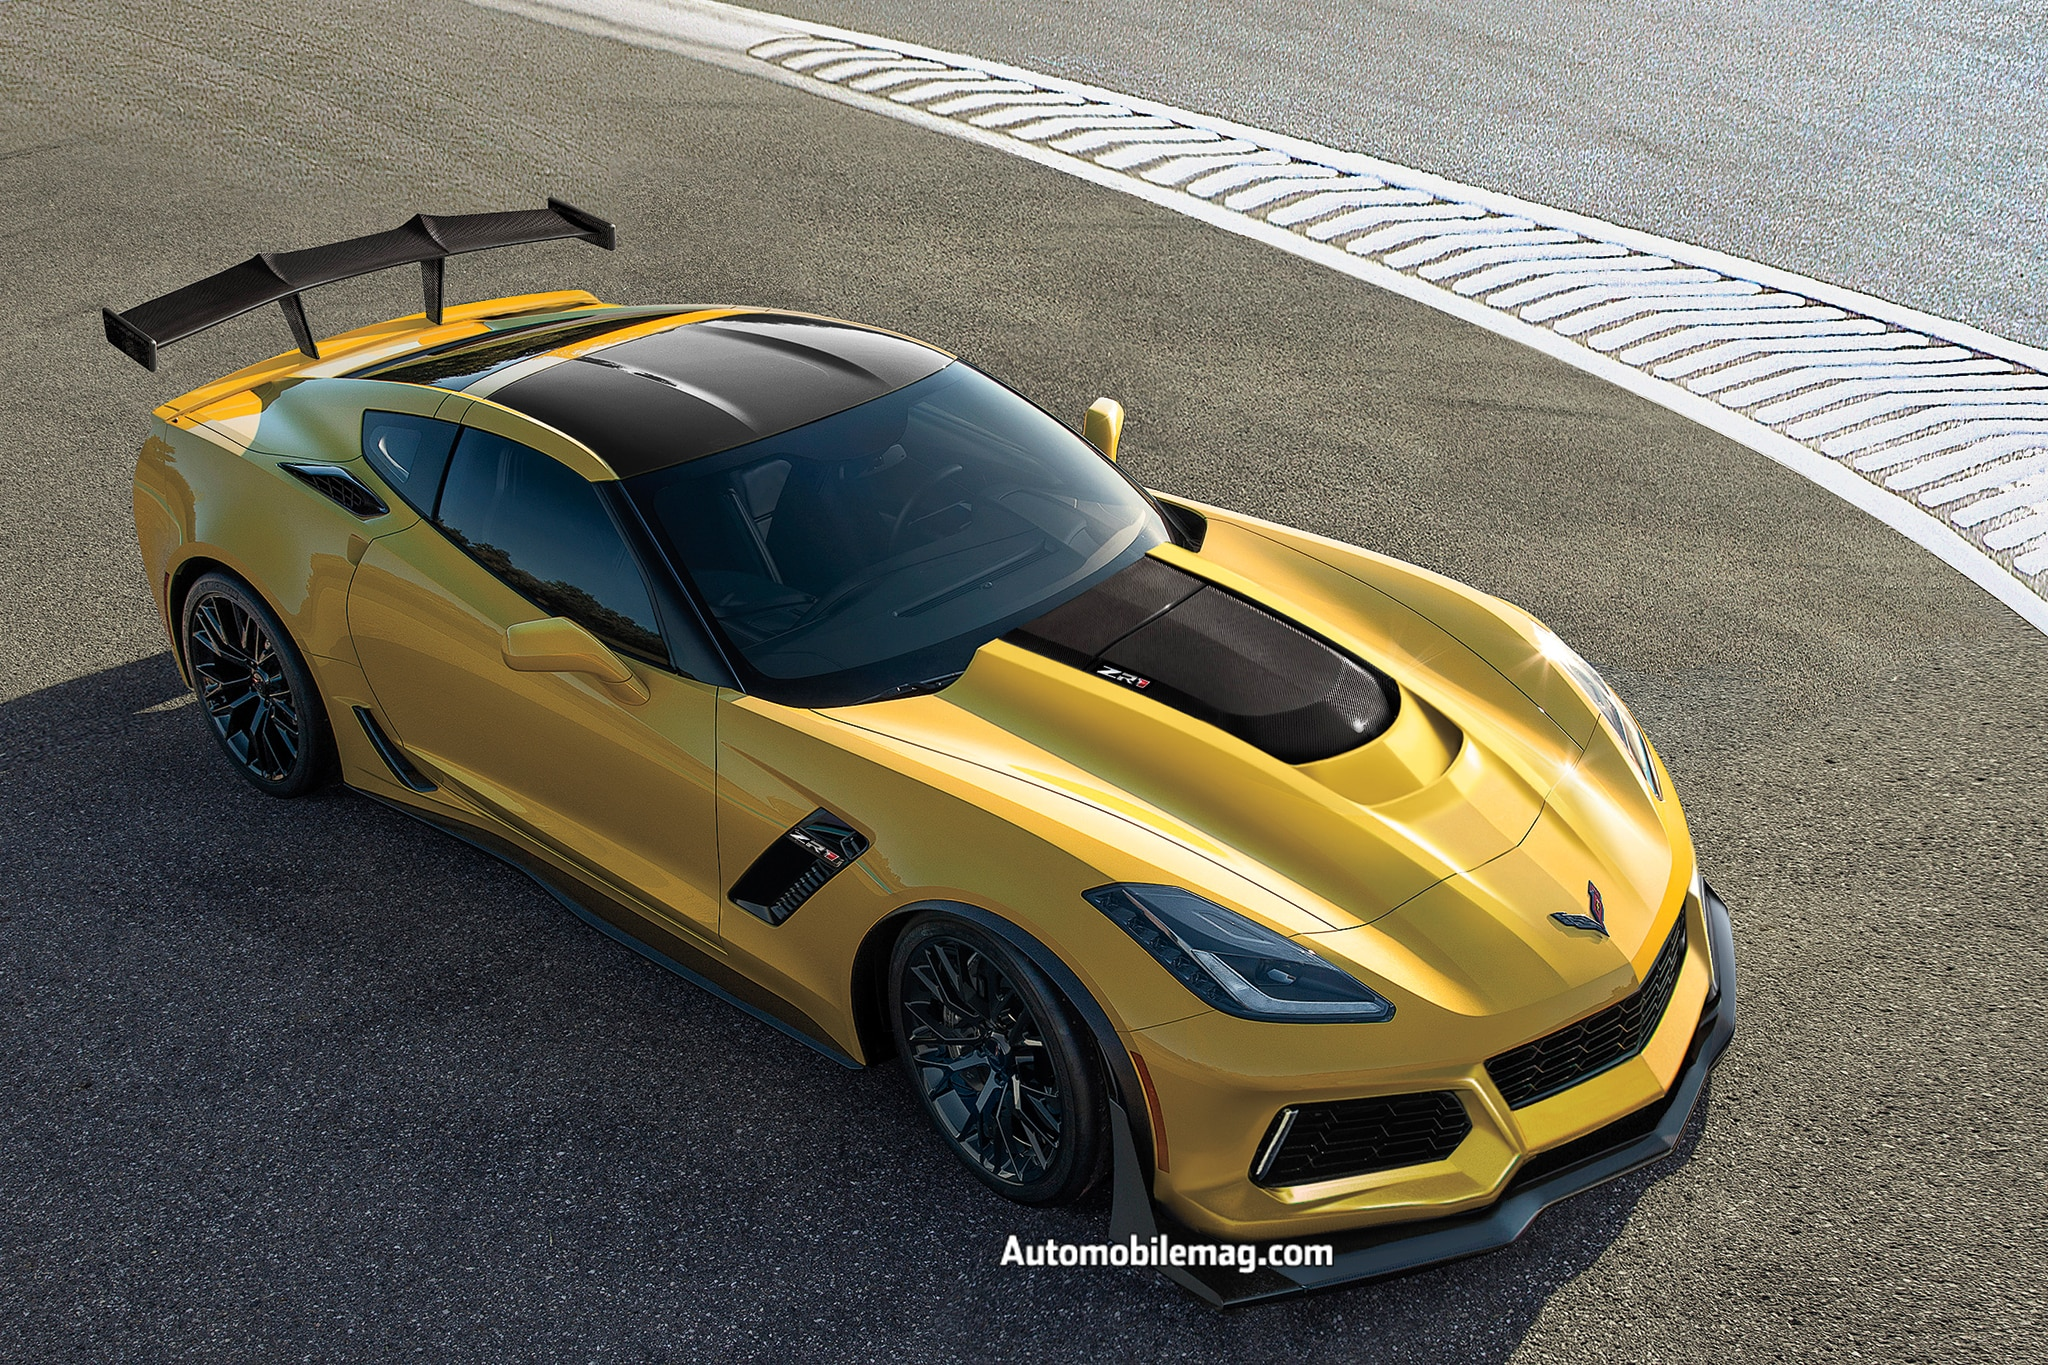 2019 chevrolet corvette zr1 to debut at 2017 dubai motor show automobile magazine. Black Bedroom Furniture Sets. Home Design Ideas